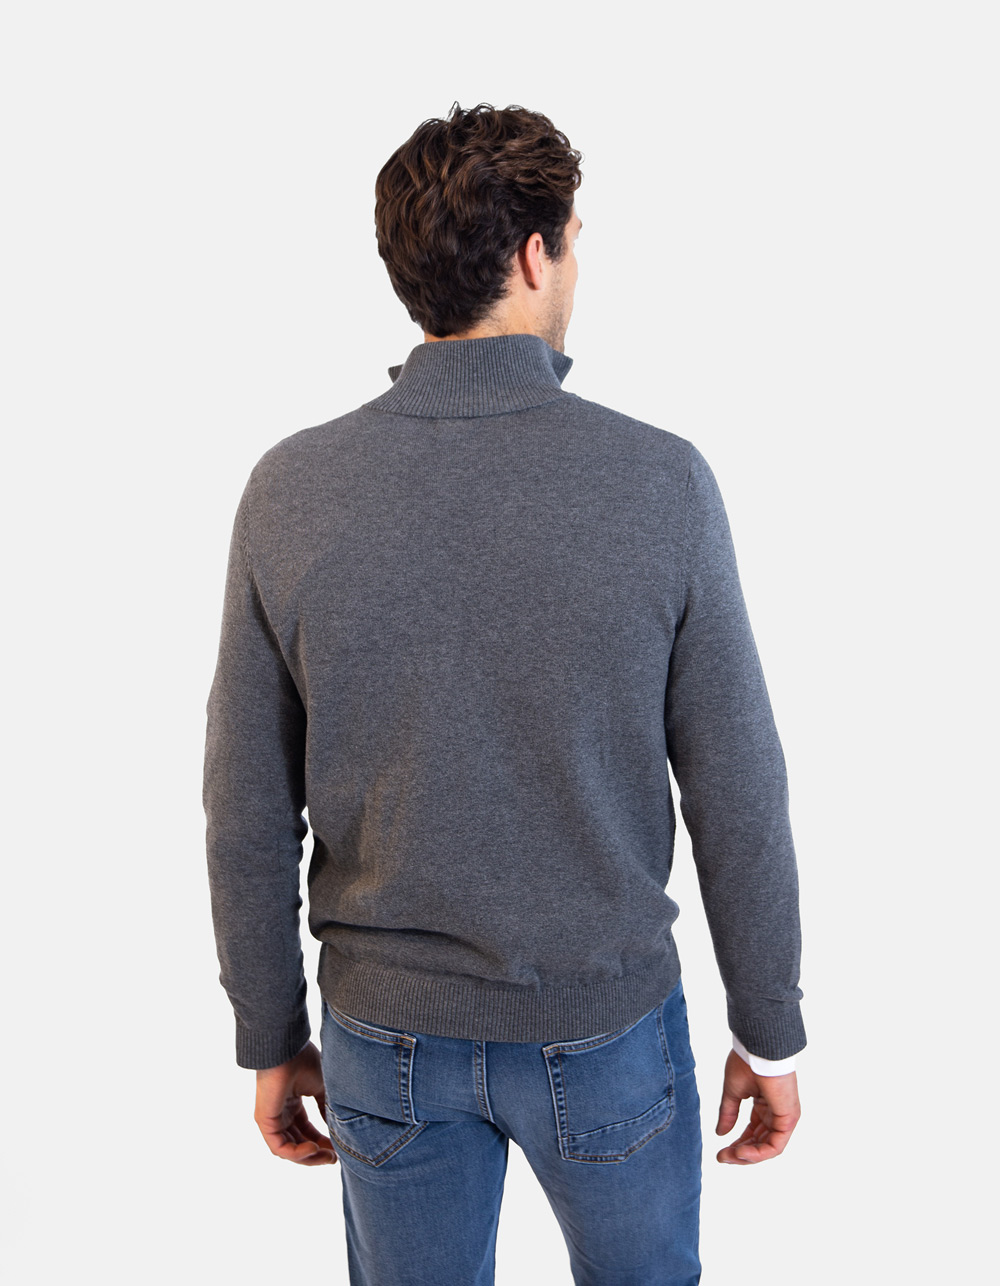 Grey neck sweater with zip - Backside